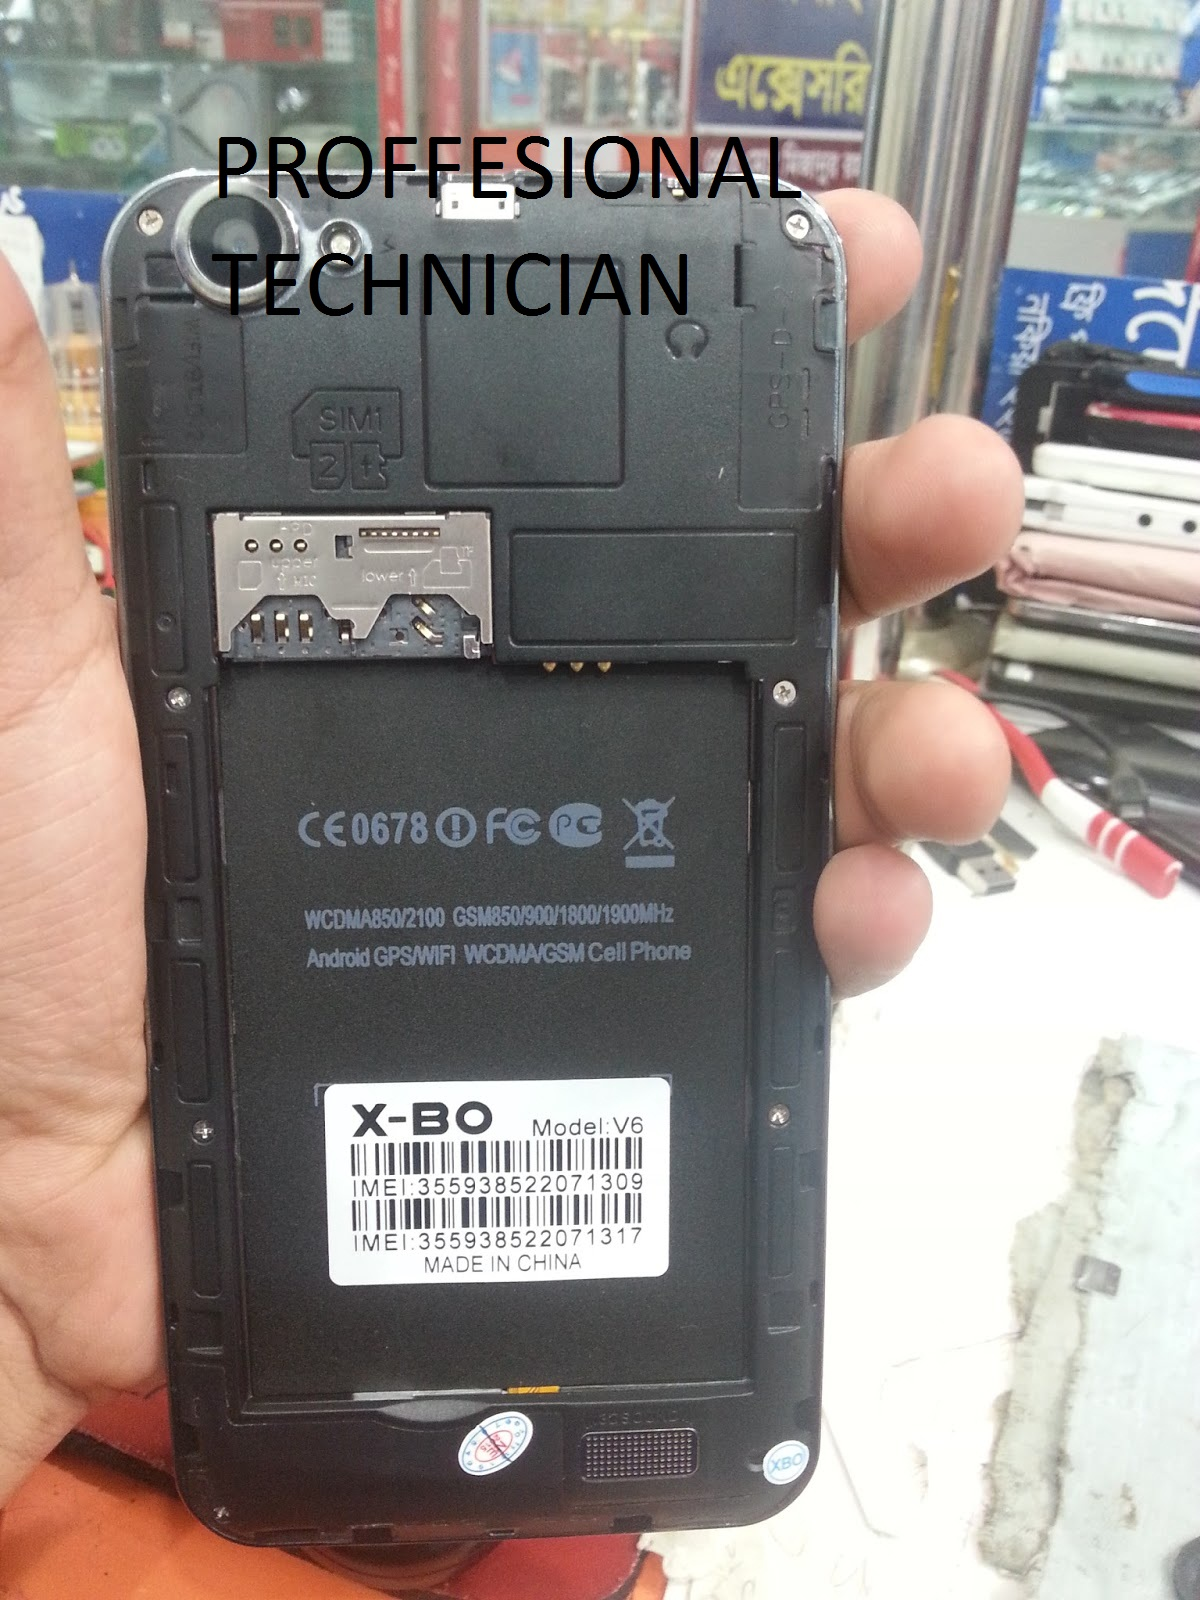 FREE X-BO V6 MT6572 SCATTER FIRMWARE FLASH FILE TESTED NO